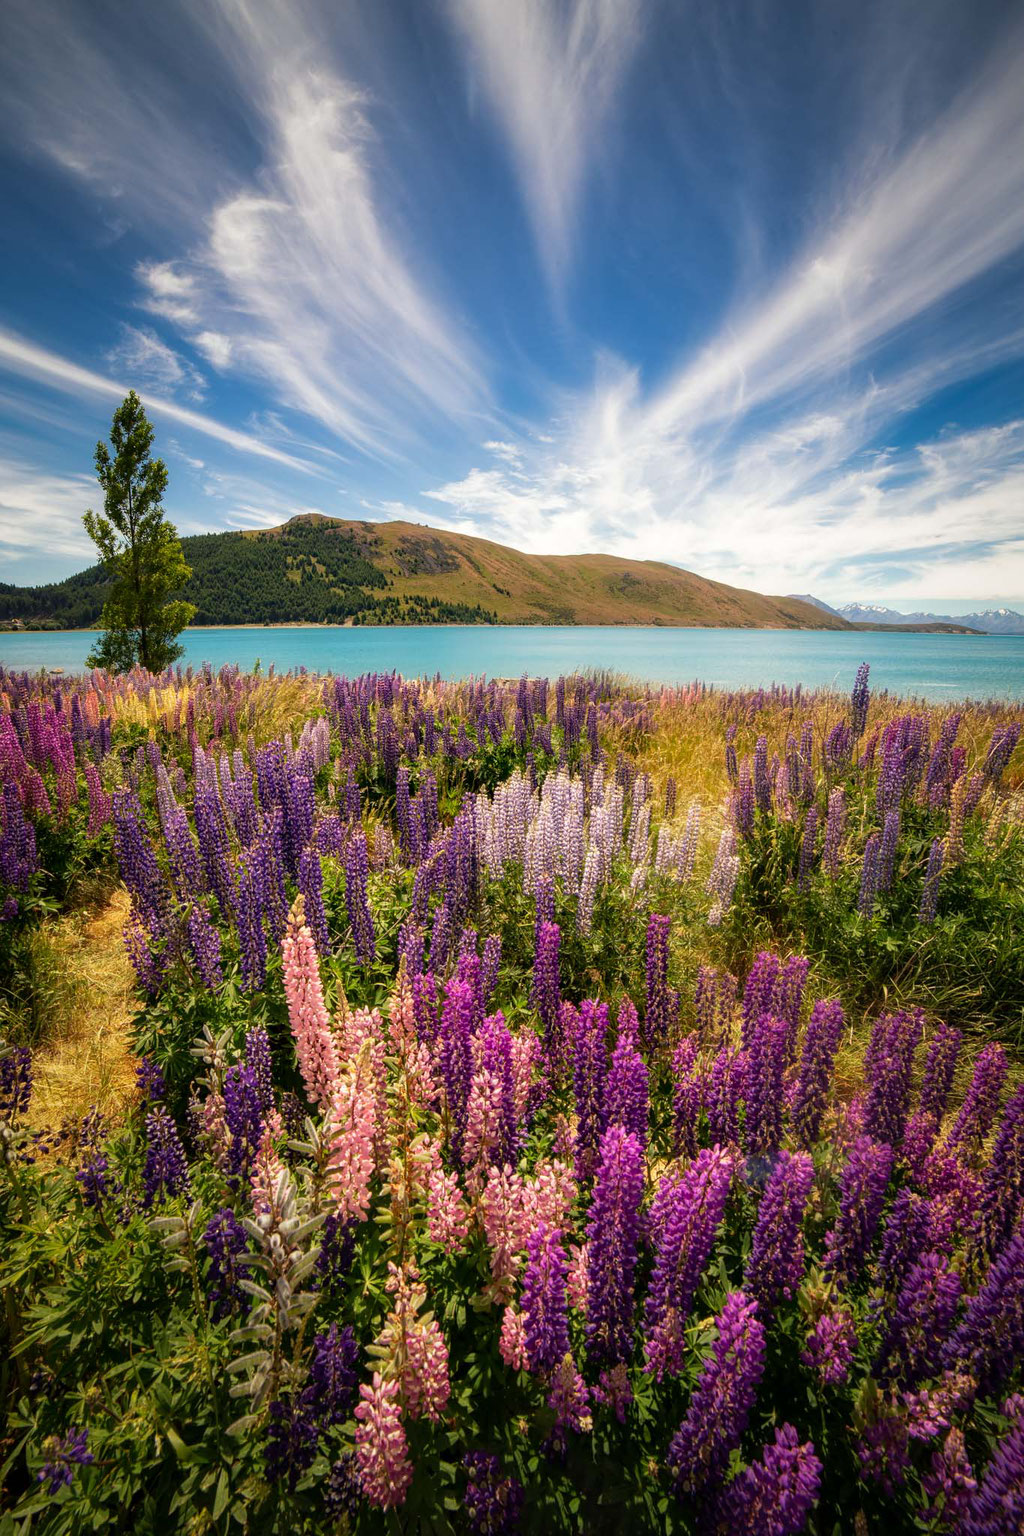 Lake Tekapo in December during the Lupin flower bloom